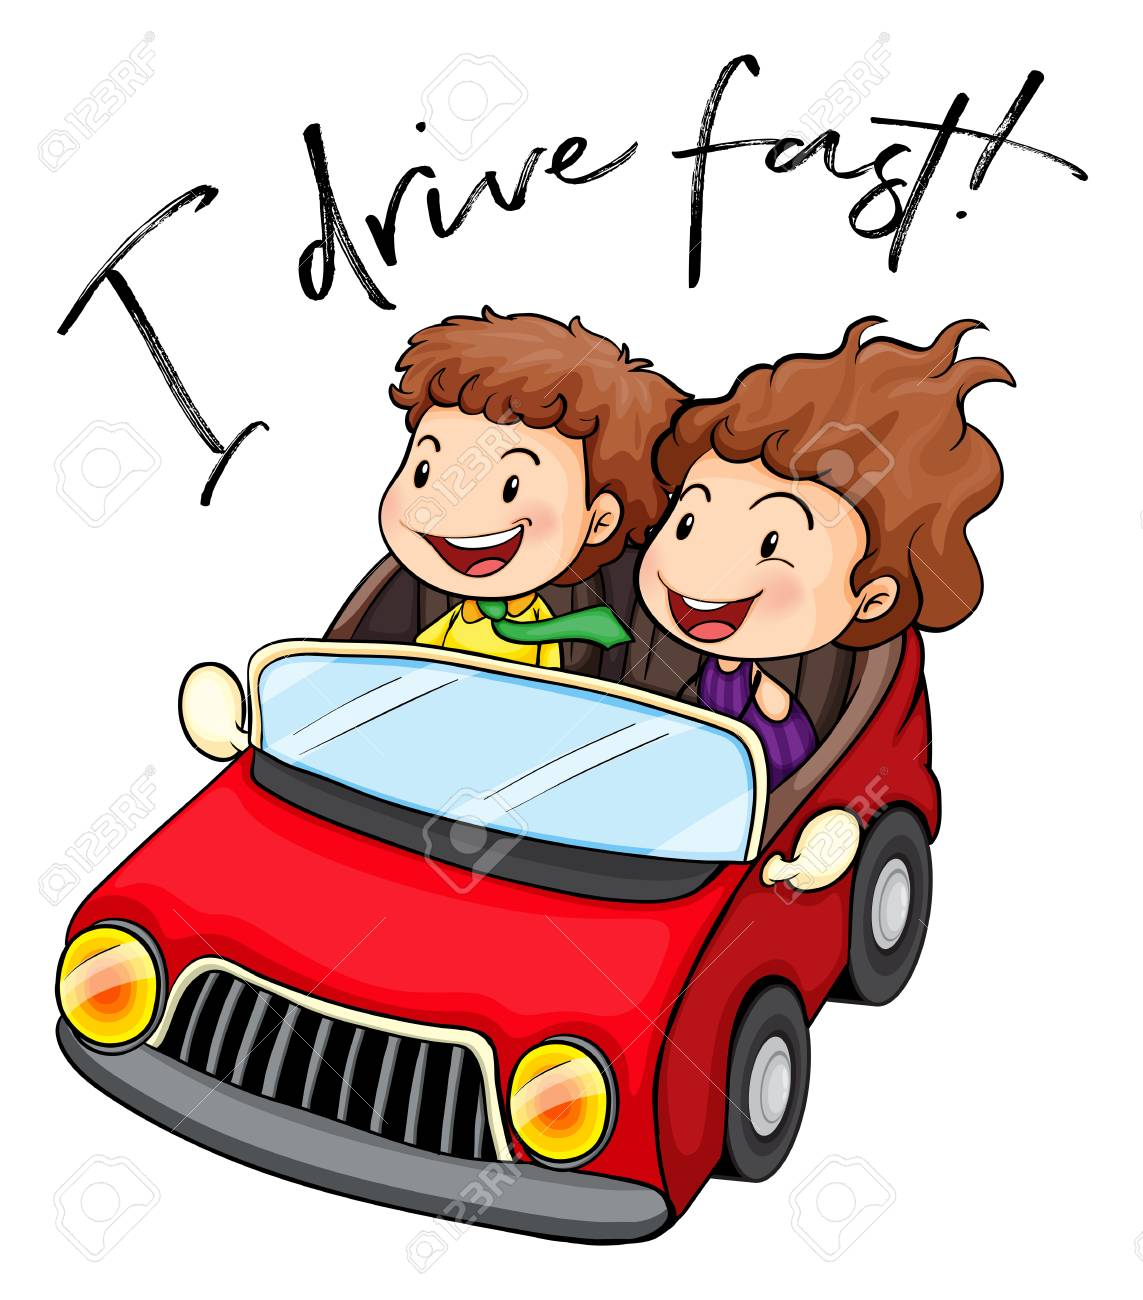 People driving car with phrase I drive fast illustration.